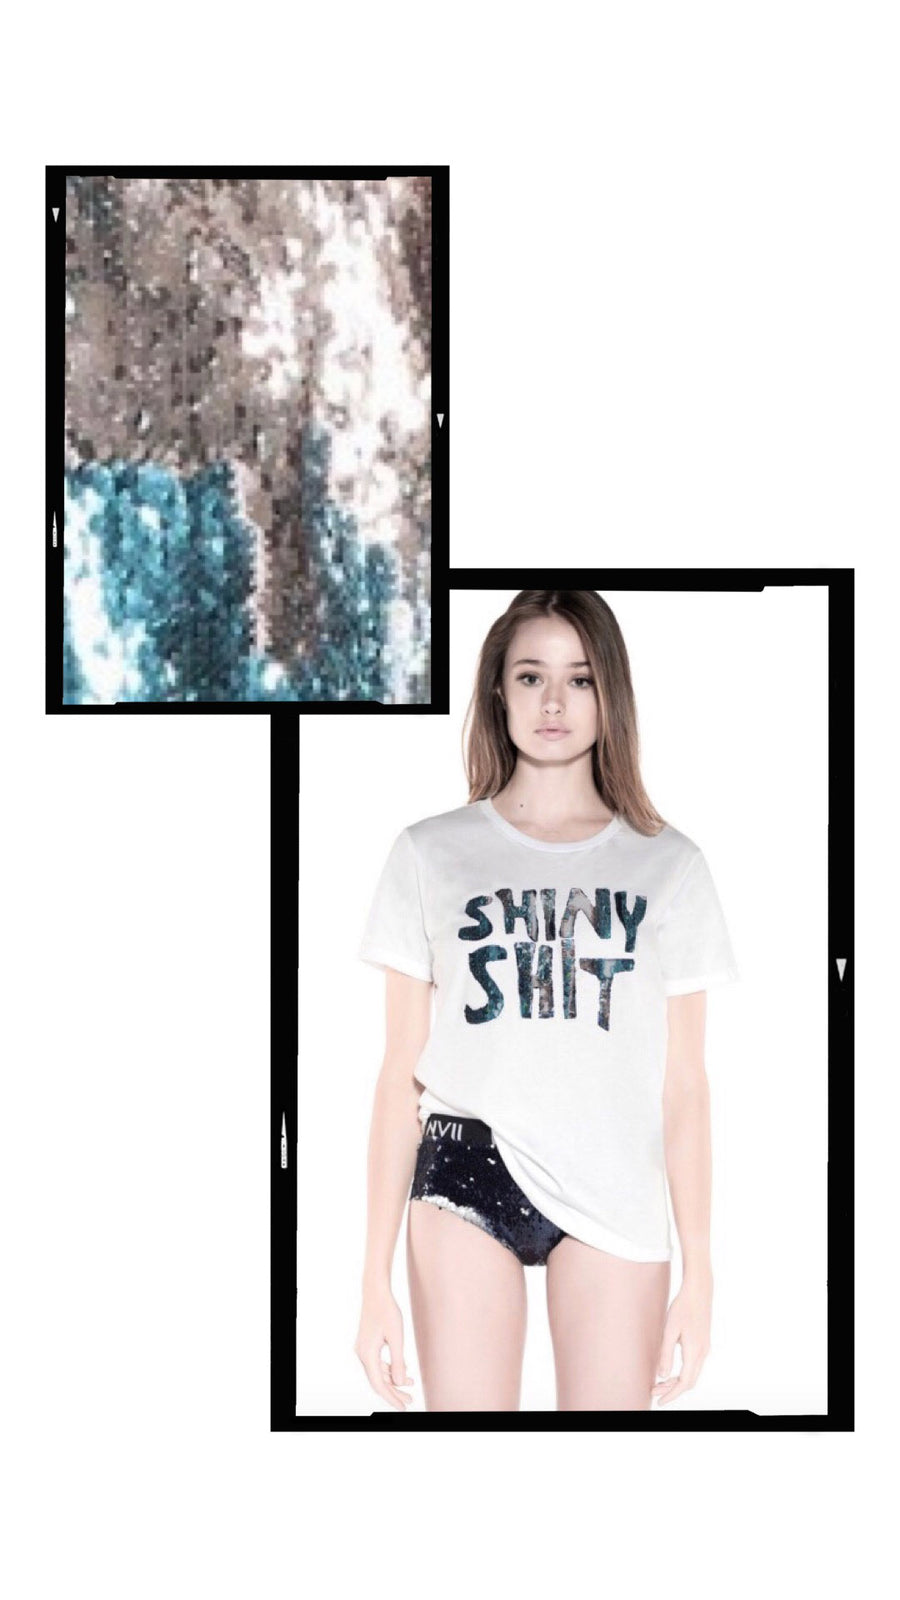 NOMAD VII - SHINY SHIT TSHIRT (CUSTOMIZE YOUR OWN) - NOMAD VII X ANNE BOWEN